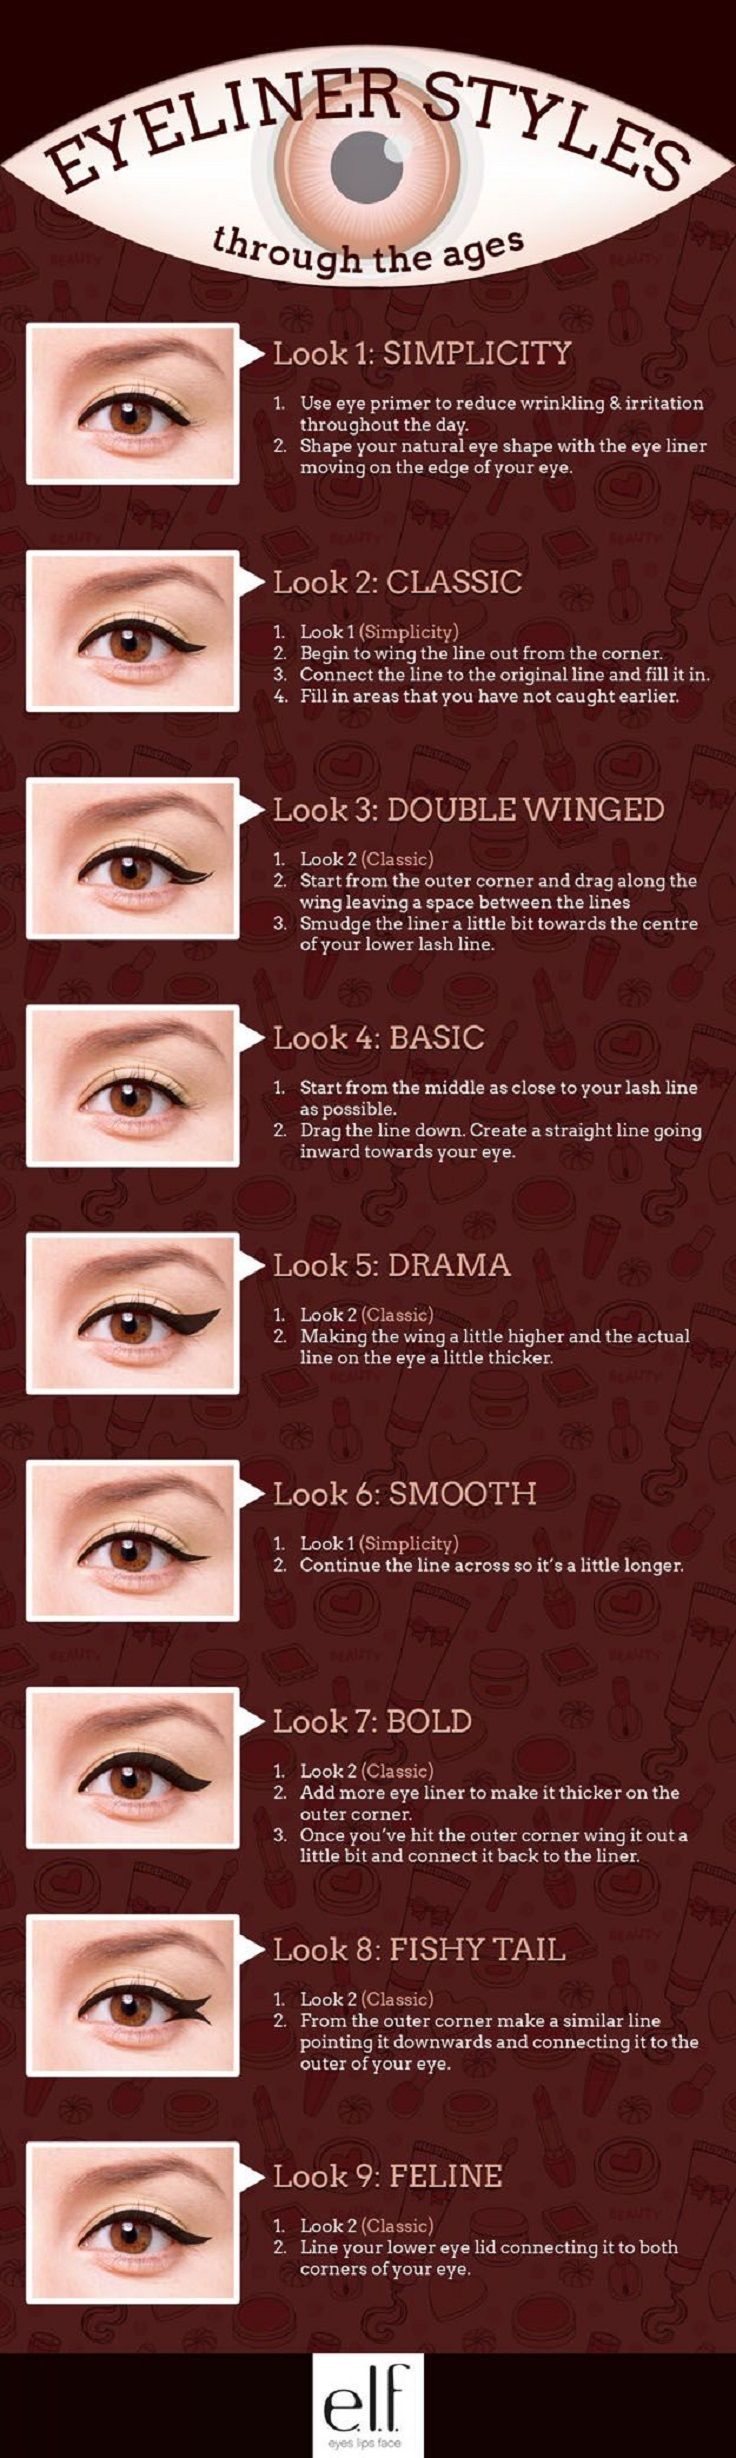 Simple Eyeliner Tutorials for Perfect Eyeliner Looks - 13 Best Makeup Tutorials and Infographics for Beginners